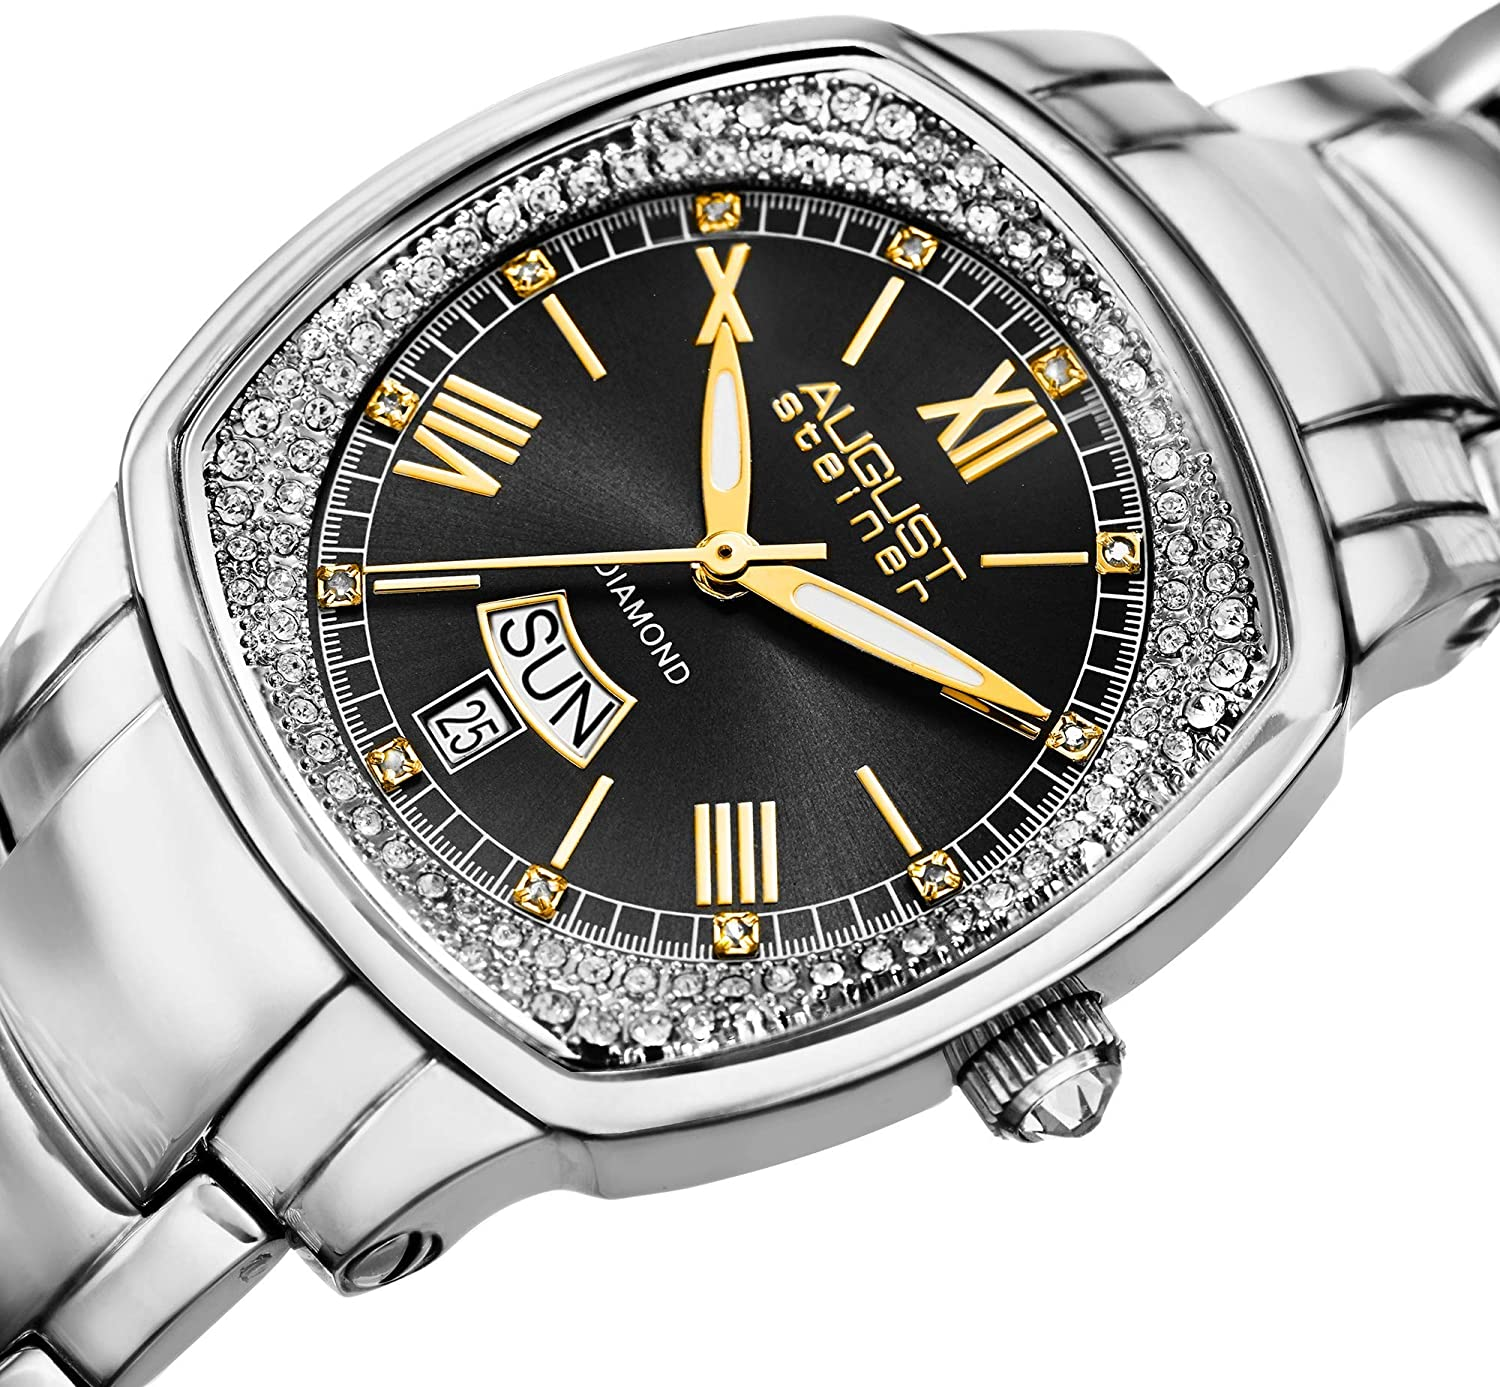 August Steiner Diamond Women's Watch - Radiant Sunburst Dial with Day and Date Window with Diamond Hour Markers On Stainless Steel Bracelet - AS8193 Black Dial Silver Band